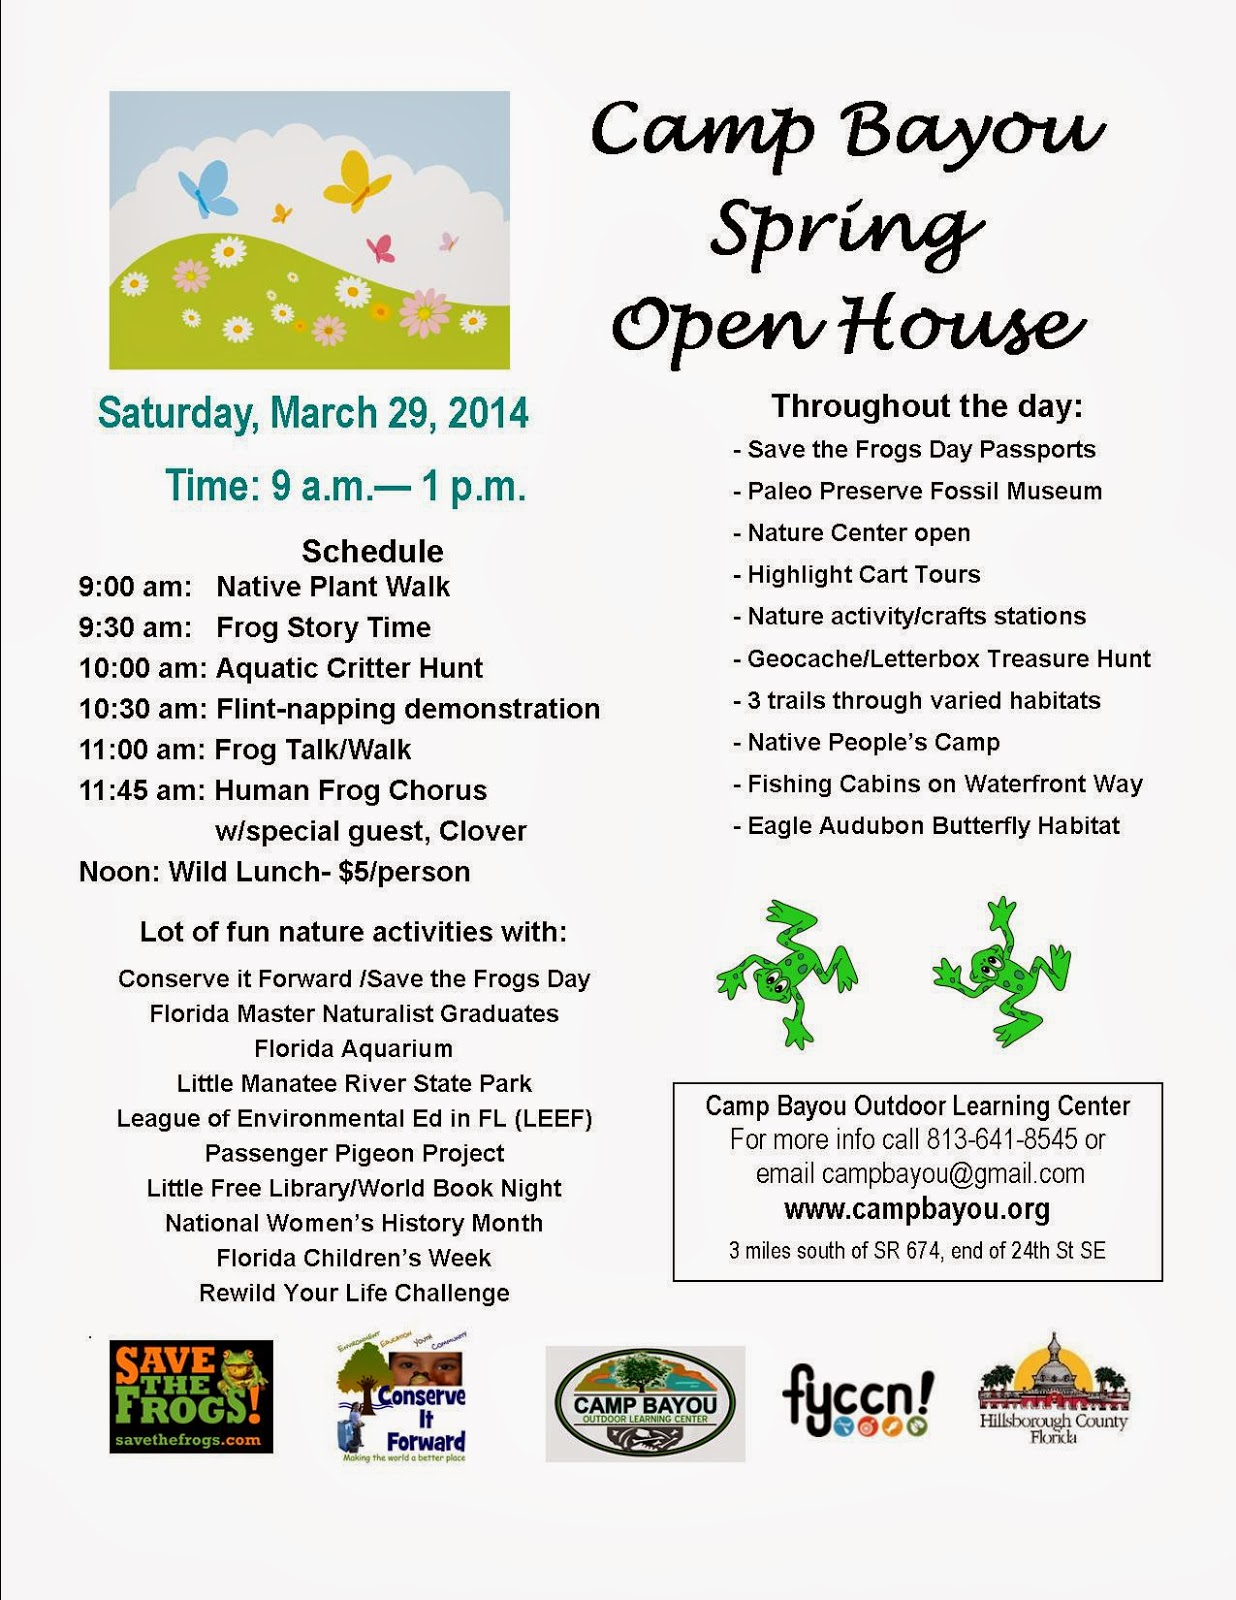 http://campbayou.blogspot.com/2014/03/camp-bayou-open-house-saturday-29-2014.html